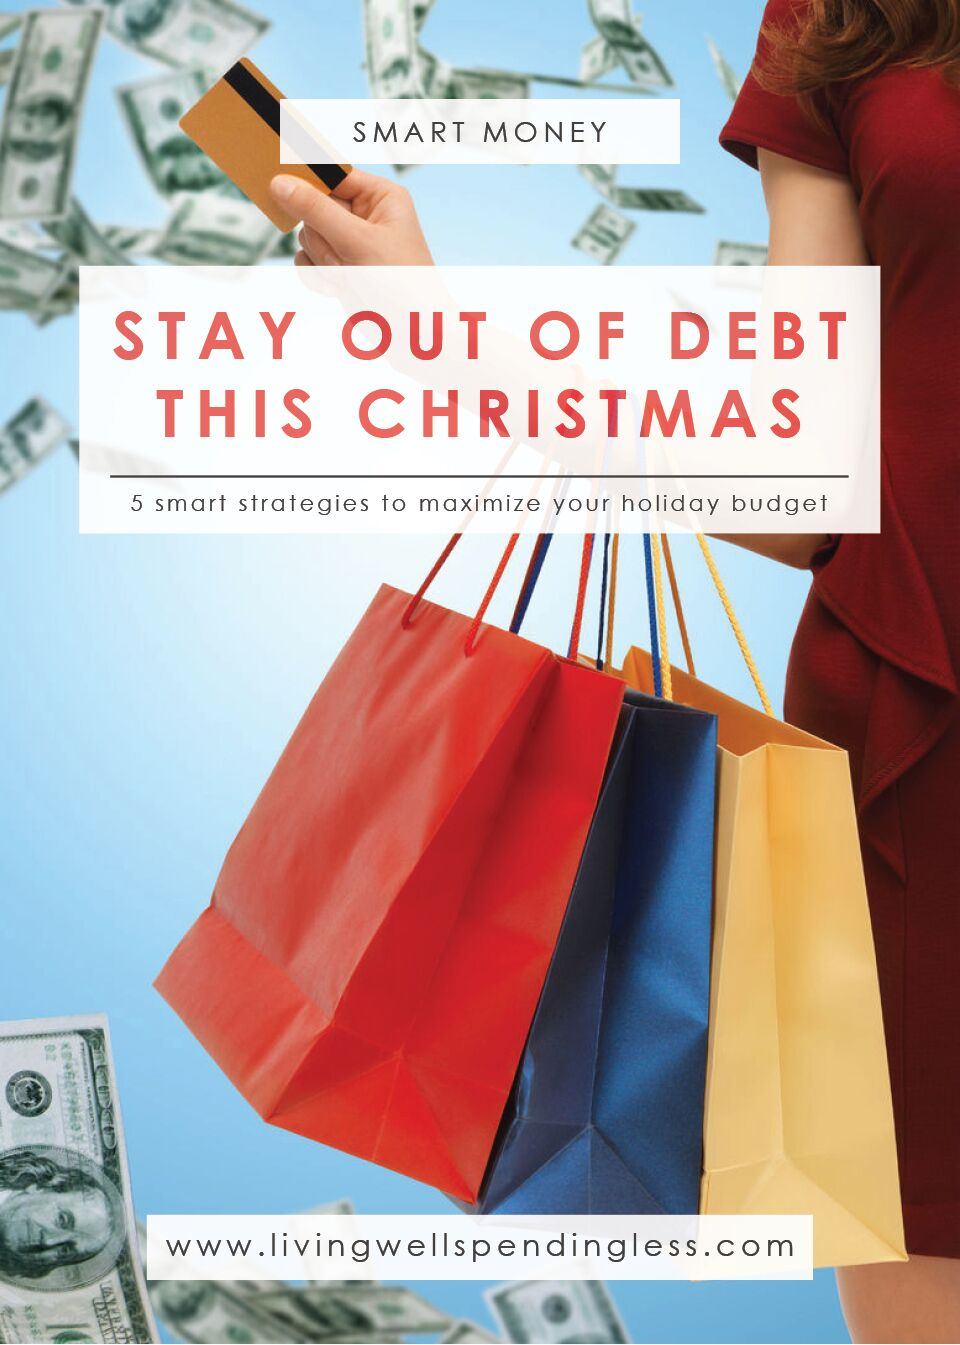 Strategies to set a Christmas budget.